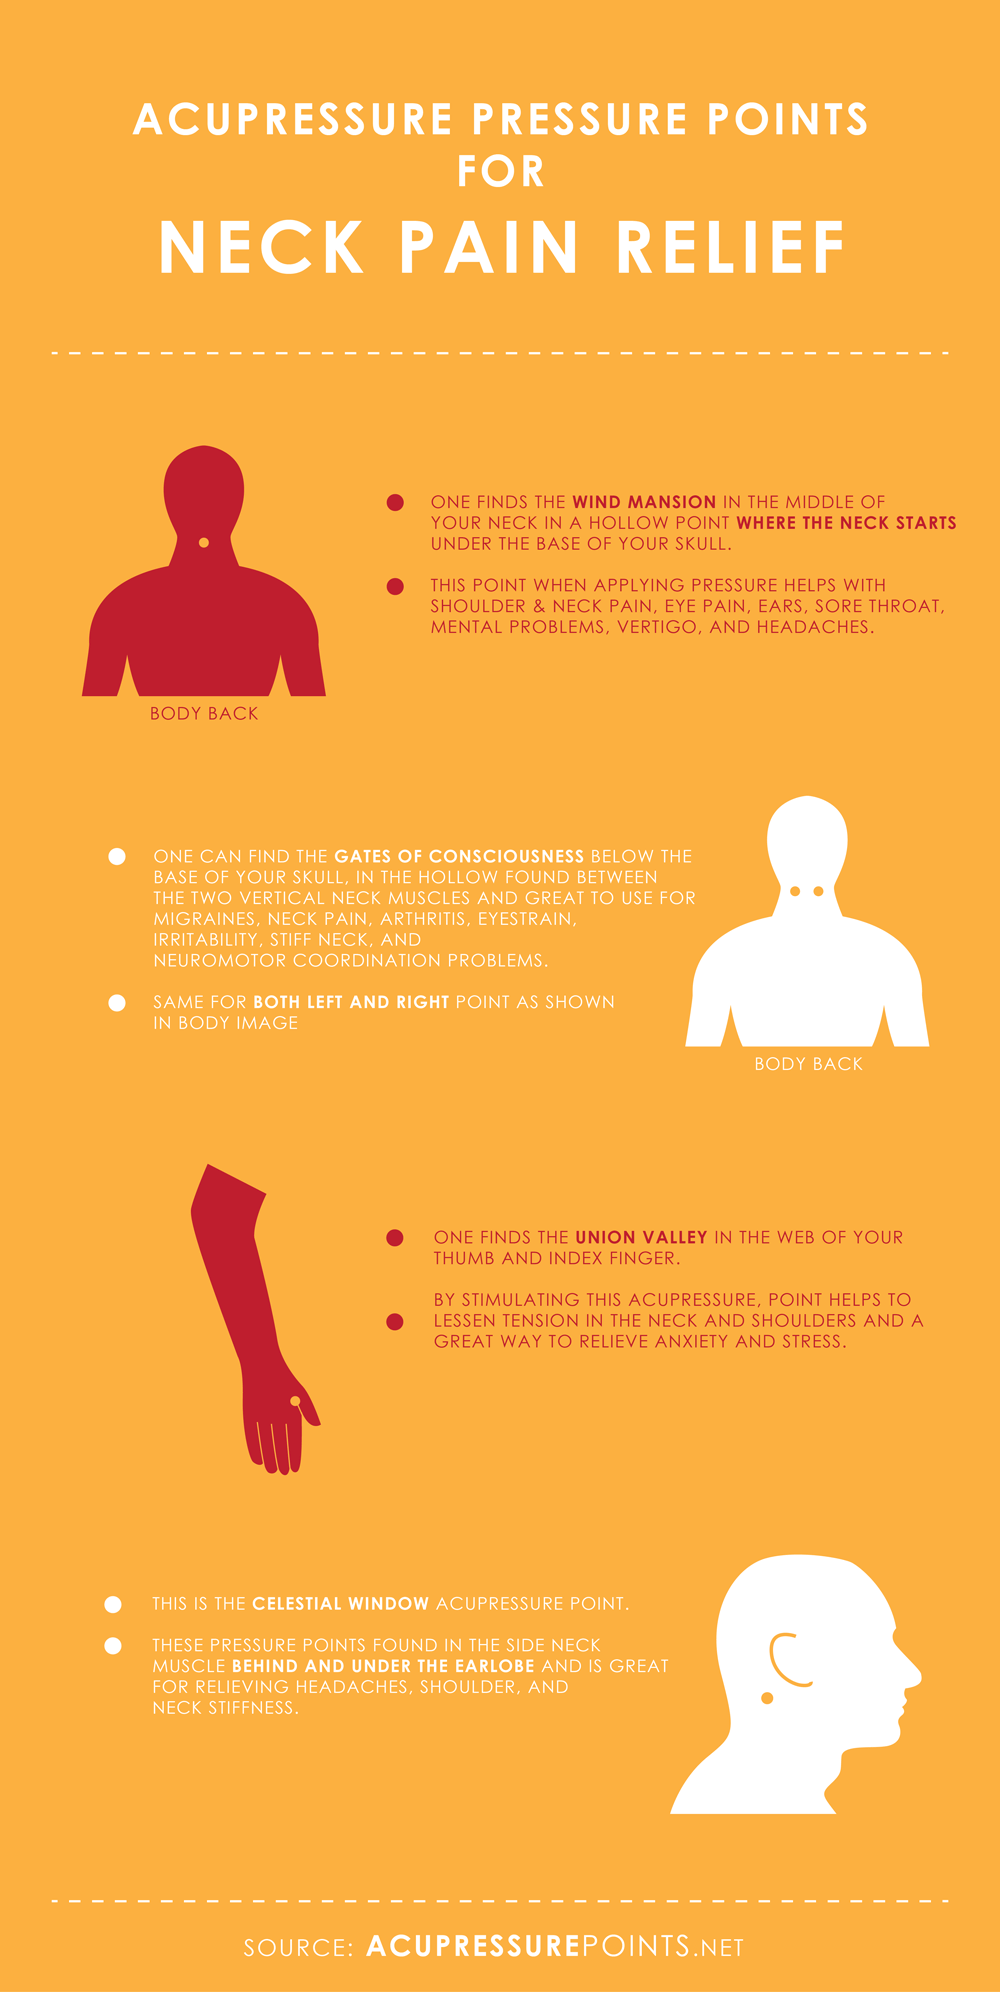 Acupressure Points for Neck Pain Relief Infographic